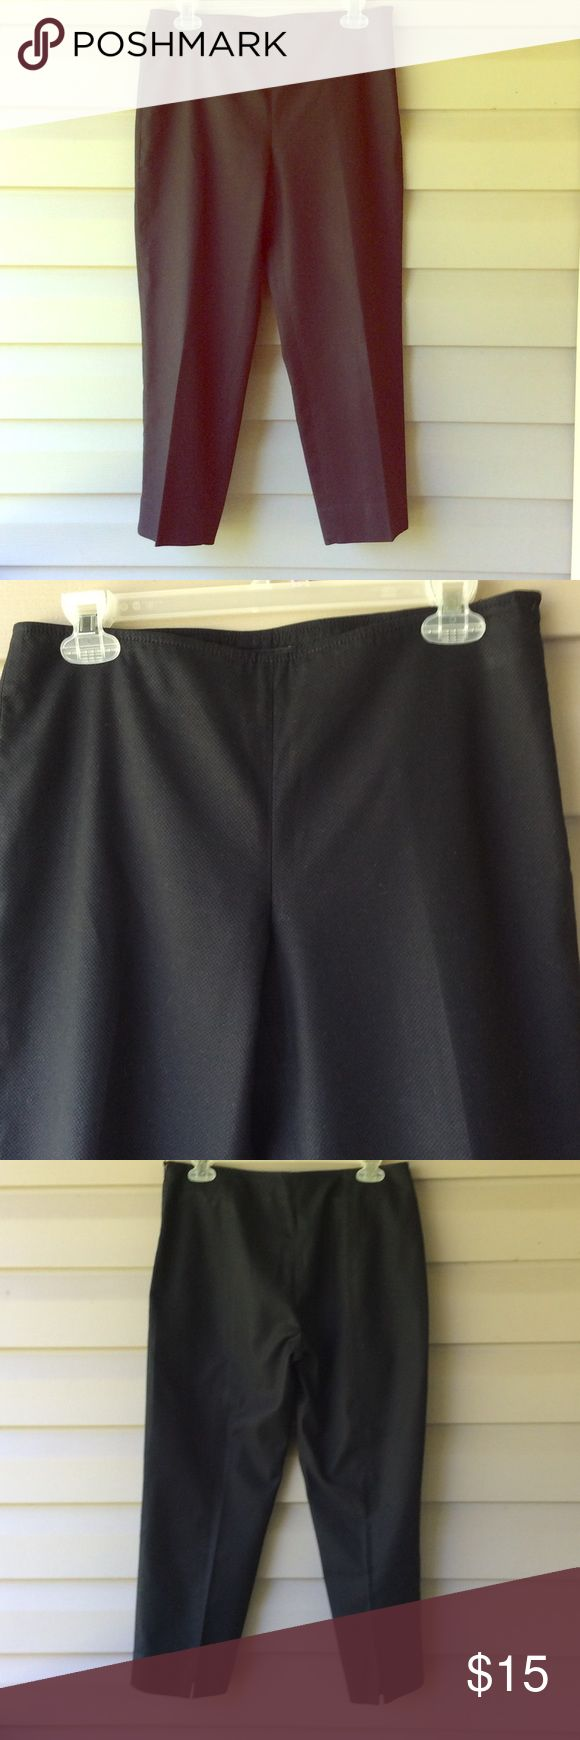 Talbots petite black dress pants Talbots petite black dress pants. No pockets, zip up one side, 6P size. Nice! Excellent condition!!! Talbots Pants Ankle & Cropped